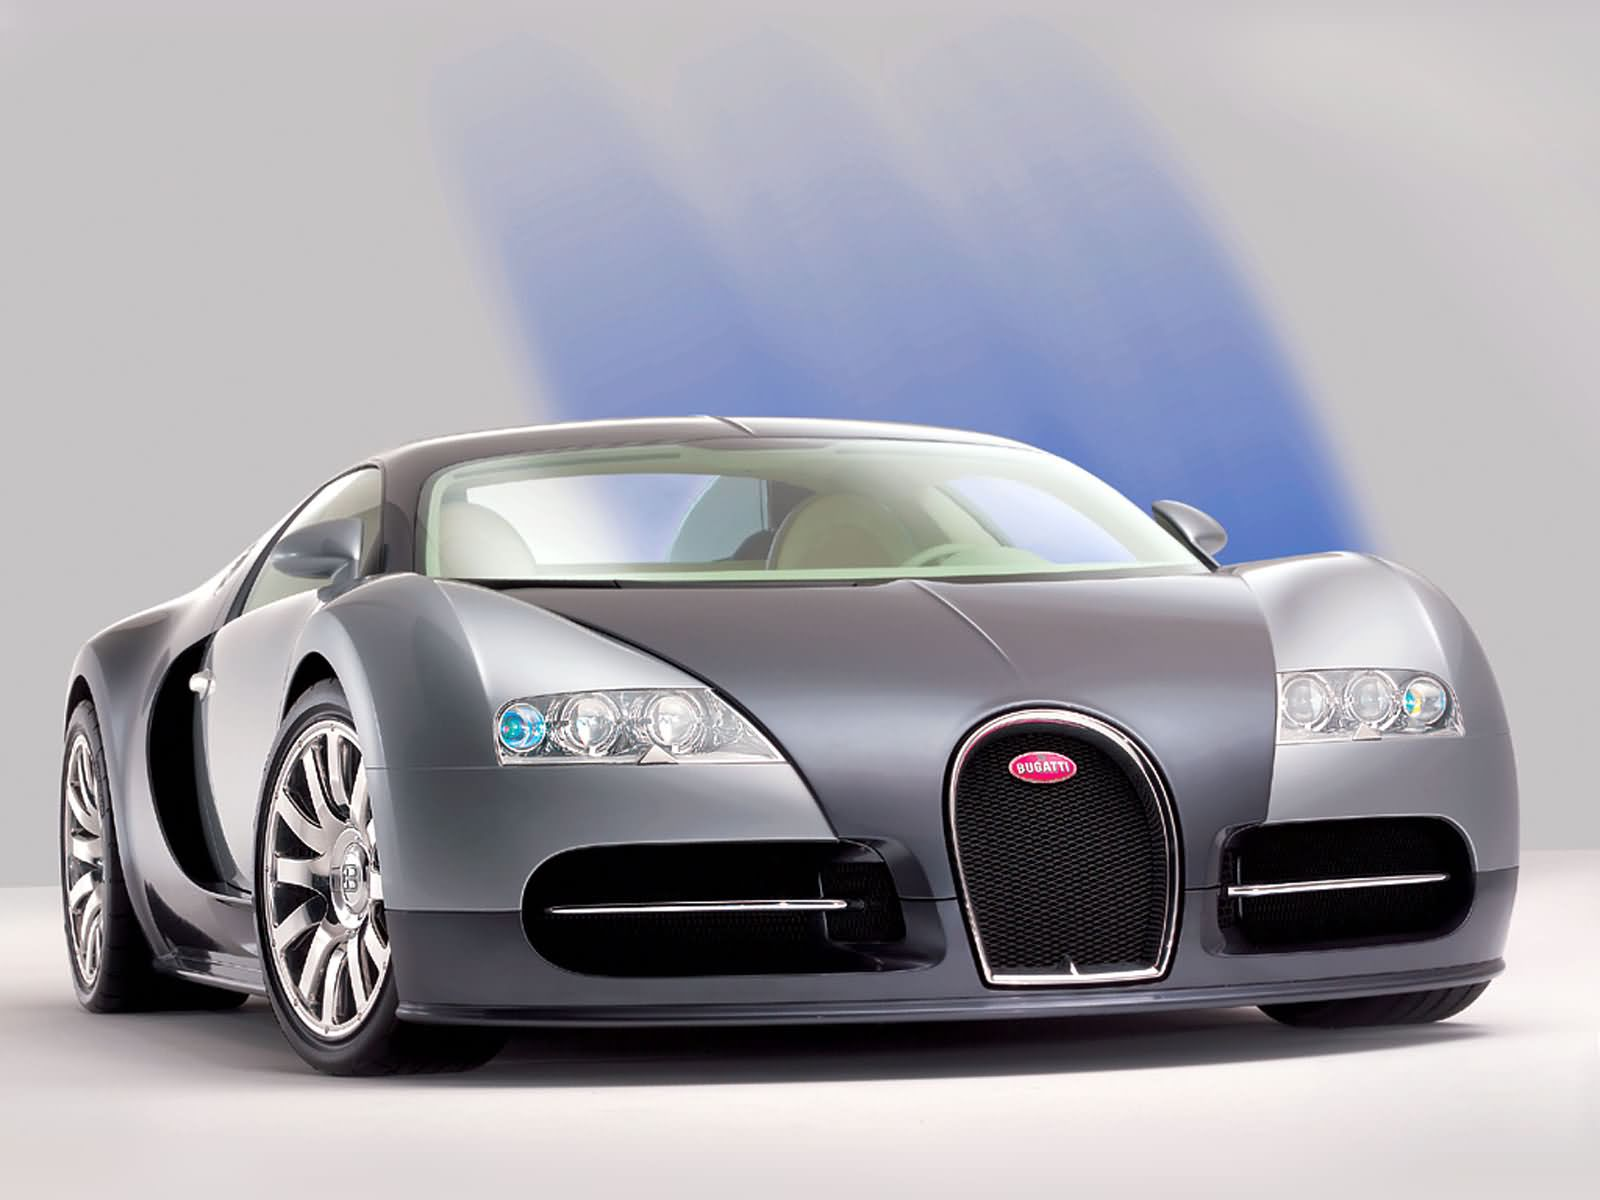 bugatti veyron wallpaper cool car wallpapers. Black Bedroom Furniture Sets. Home Design Ideas